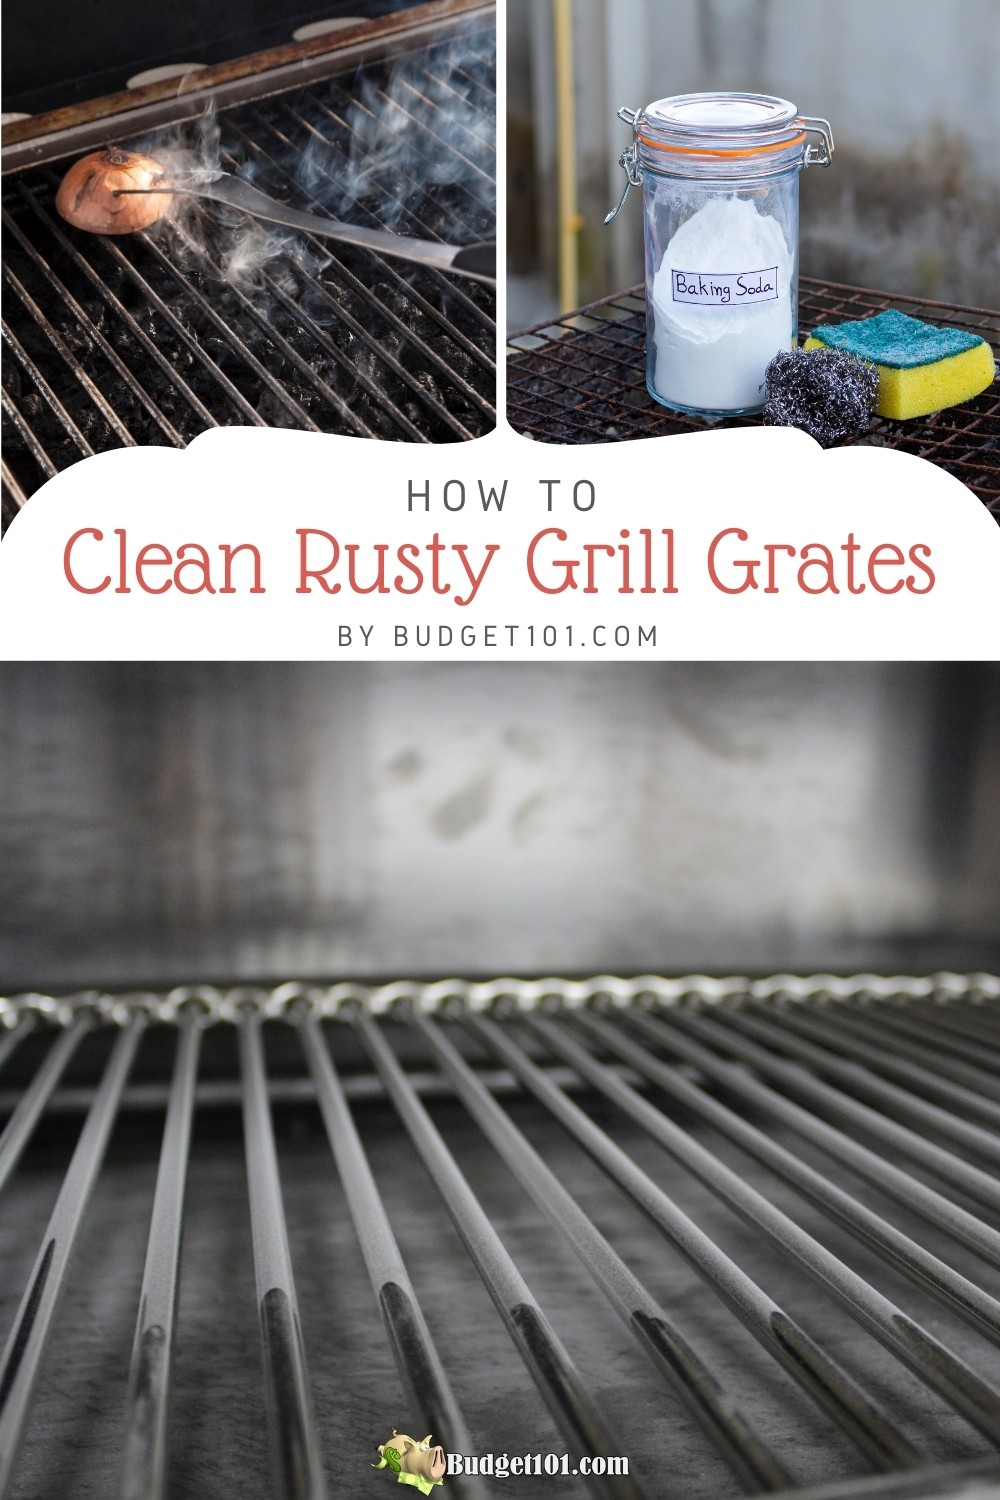 Clean Rusty Grill Grates the Easy Way! Here are 3 easy methods for removing rust from grill grates & getting them to sparkle, just in time for BBQ season. #Tipsntricks #Budget101 #Cleaning #CleaningHacks #RustSucks #Grill